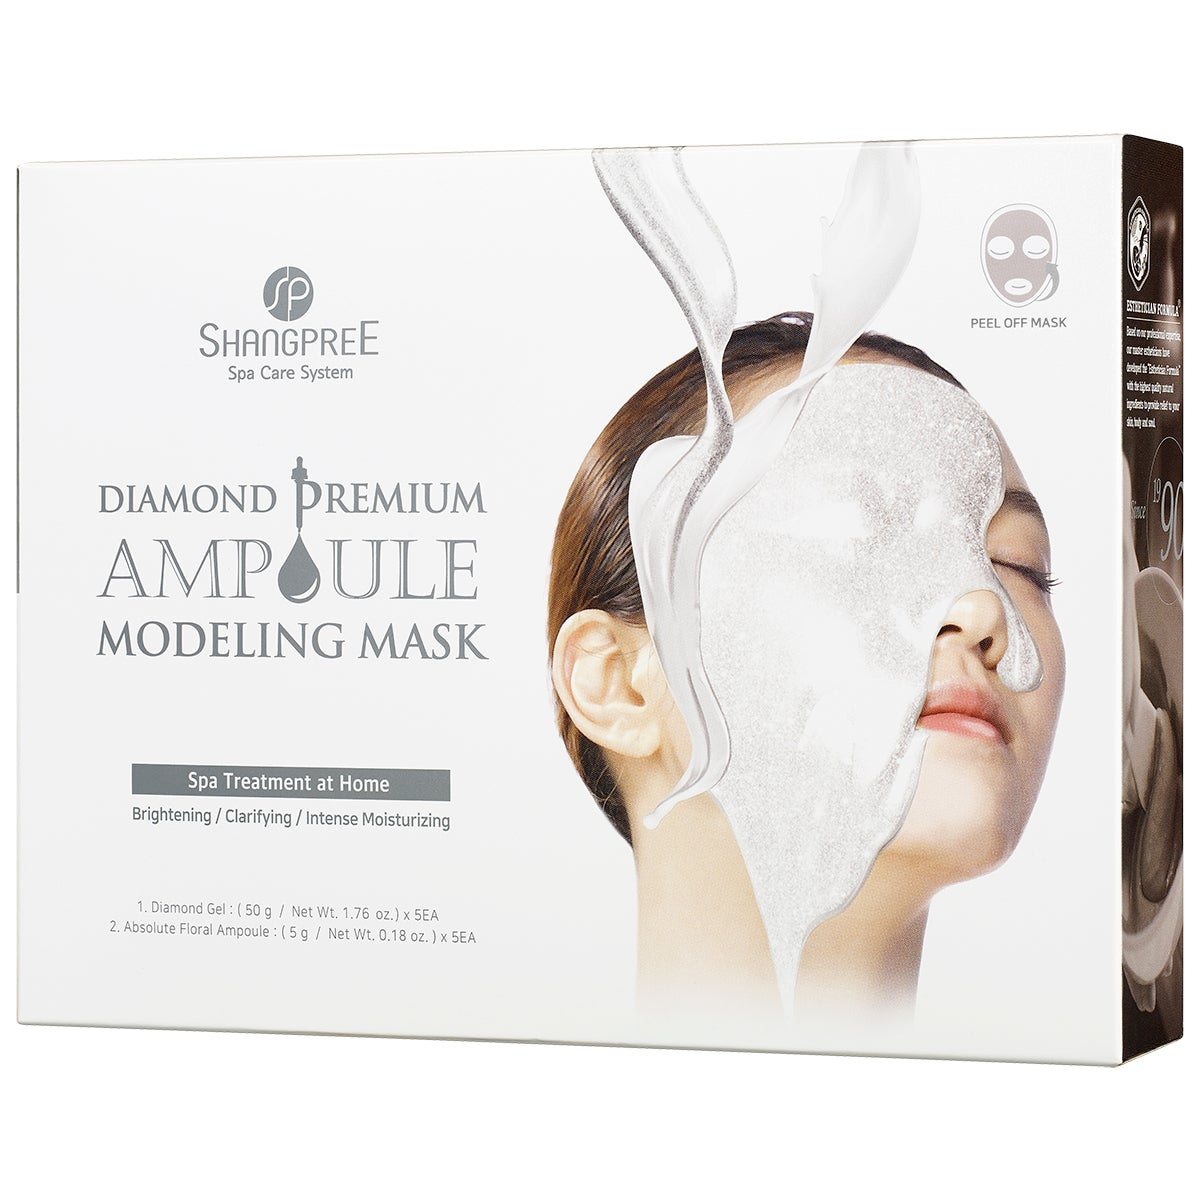 Shangpree Diamond Premium Ampoule Modeling Mask